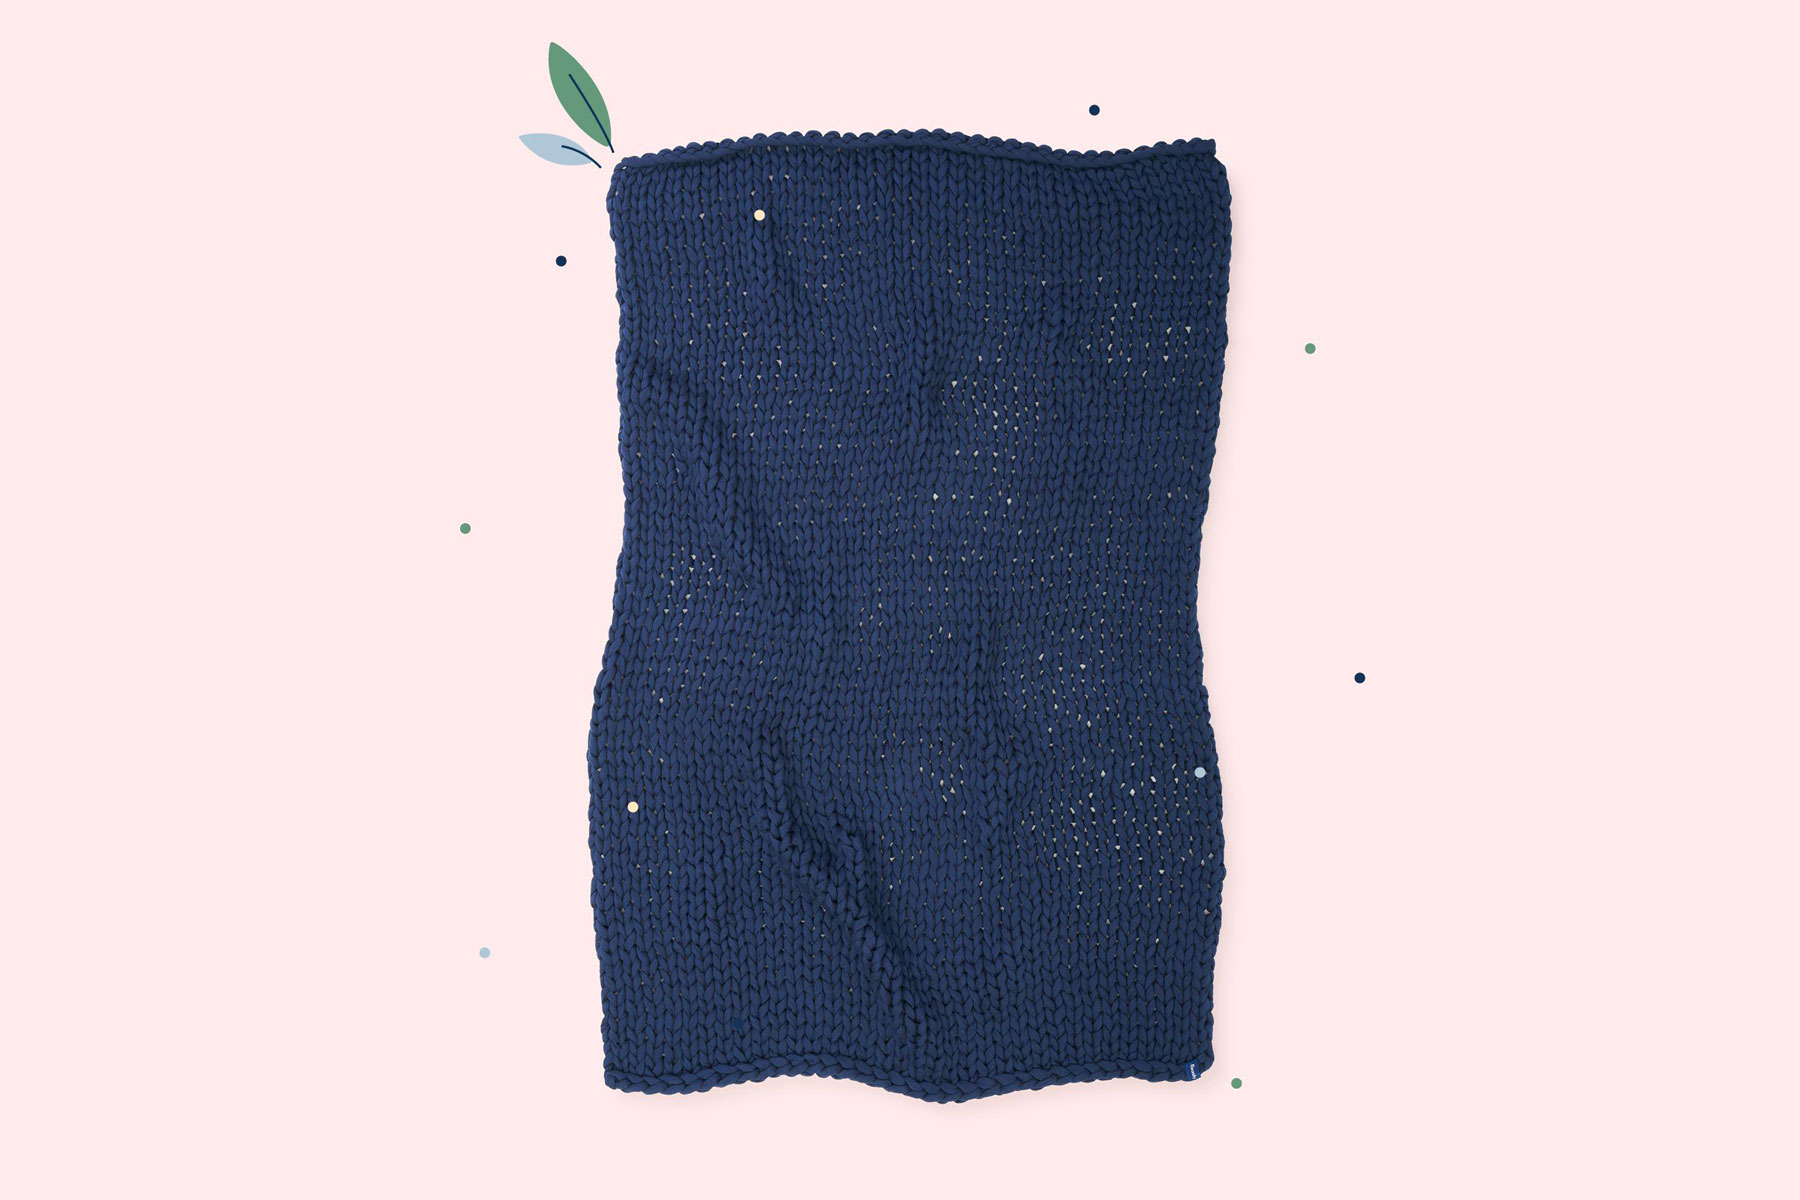 Navy knit weighted blanket